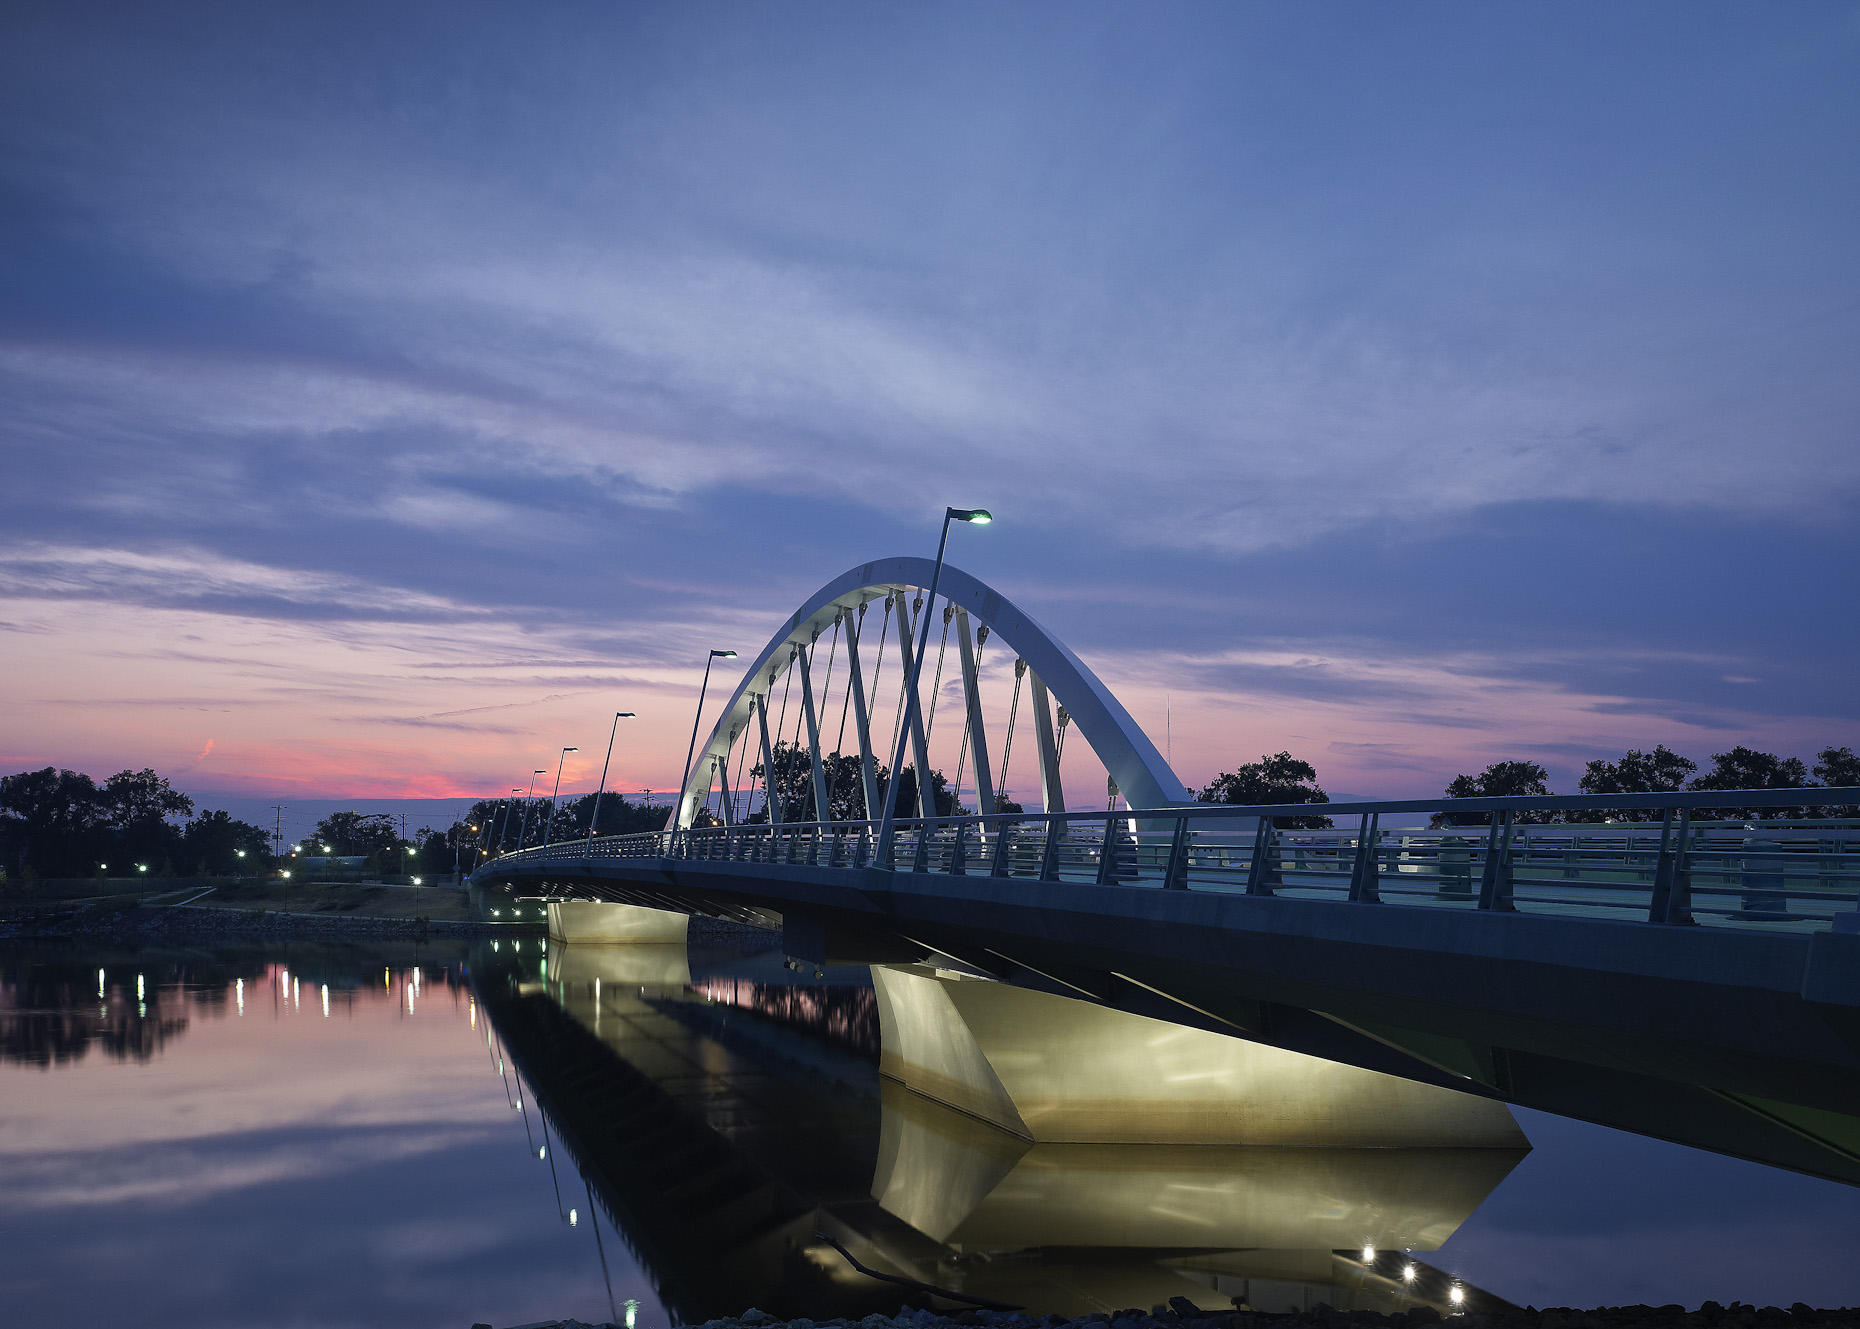 Columbus Ohio Main Street Bridge by HNTB photographed by Brad Feinknopf based in Columbus, Ohio